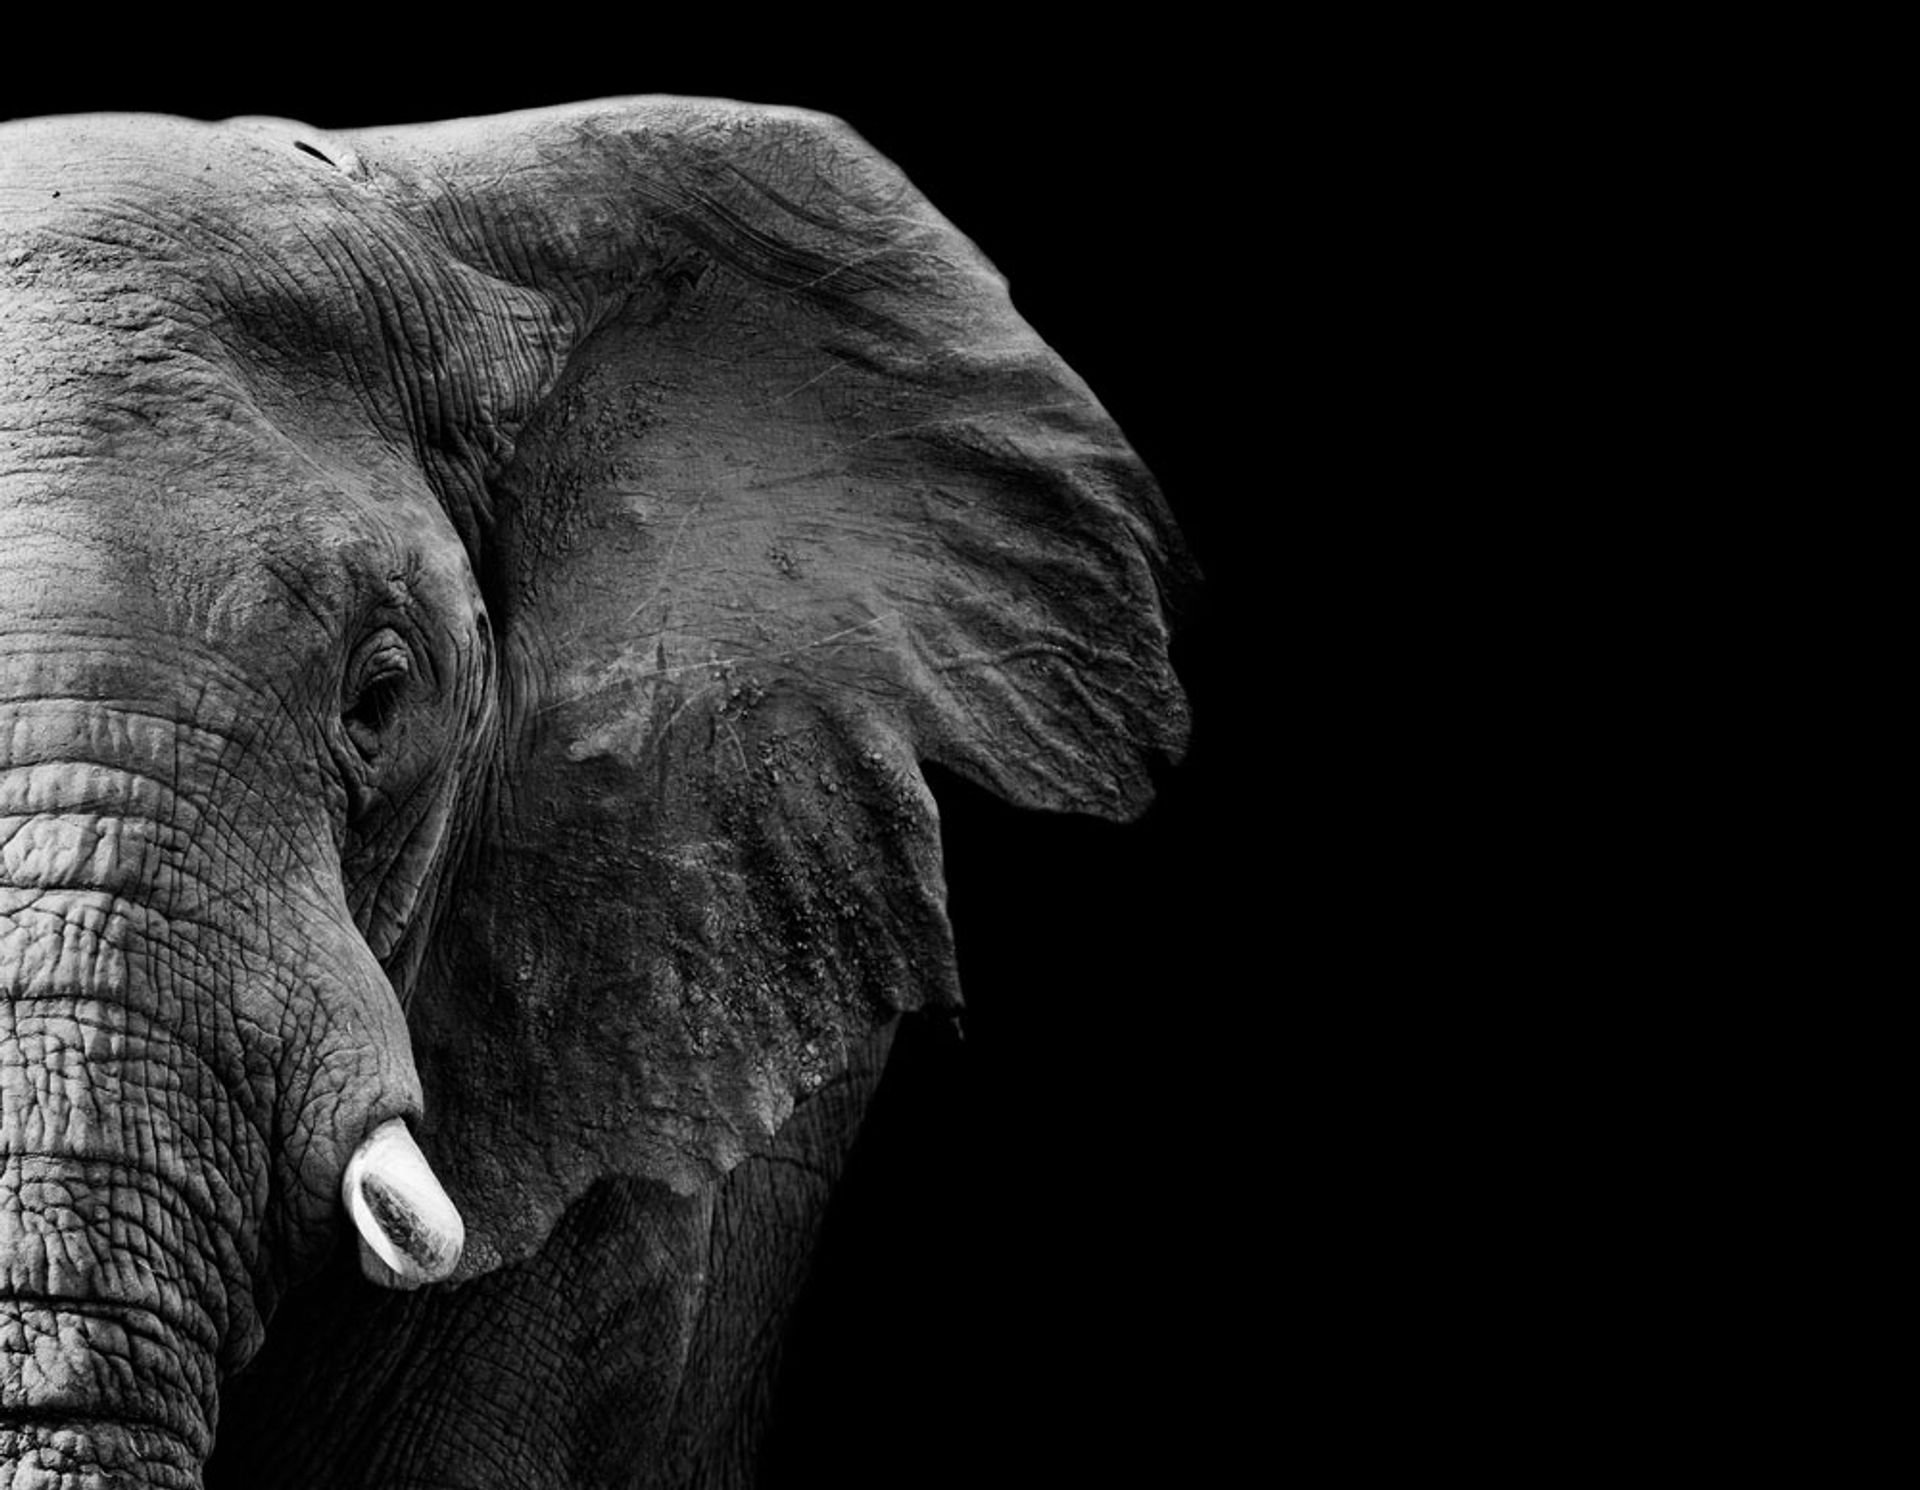 The elephant population has declined by almost one-third in under a decade Donovan van staden, shutterstock